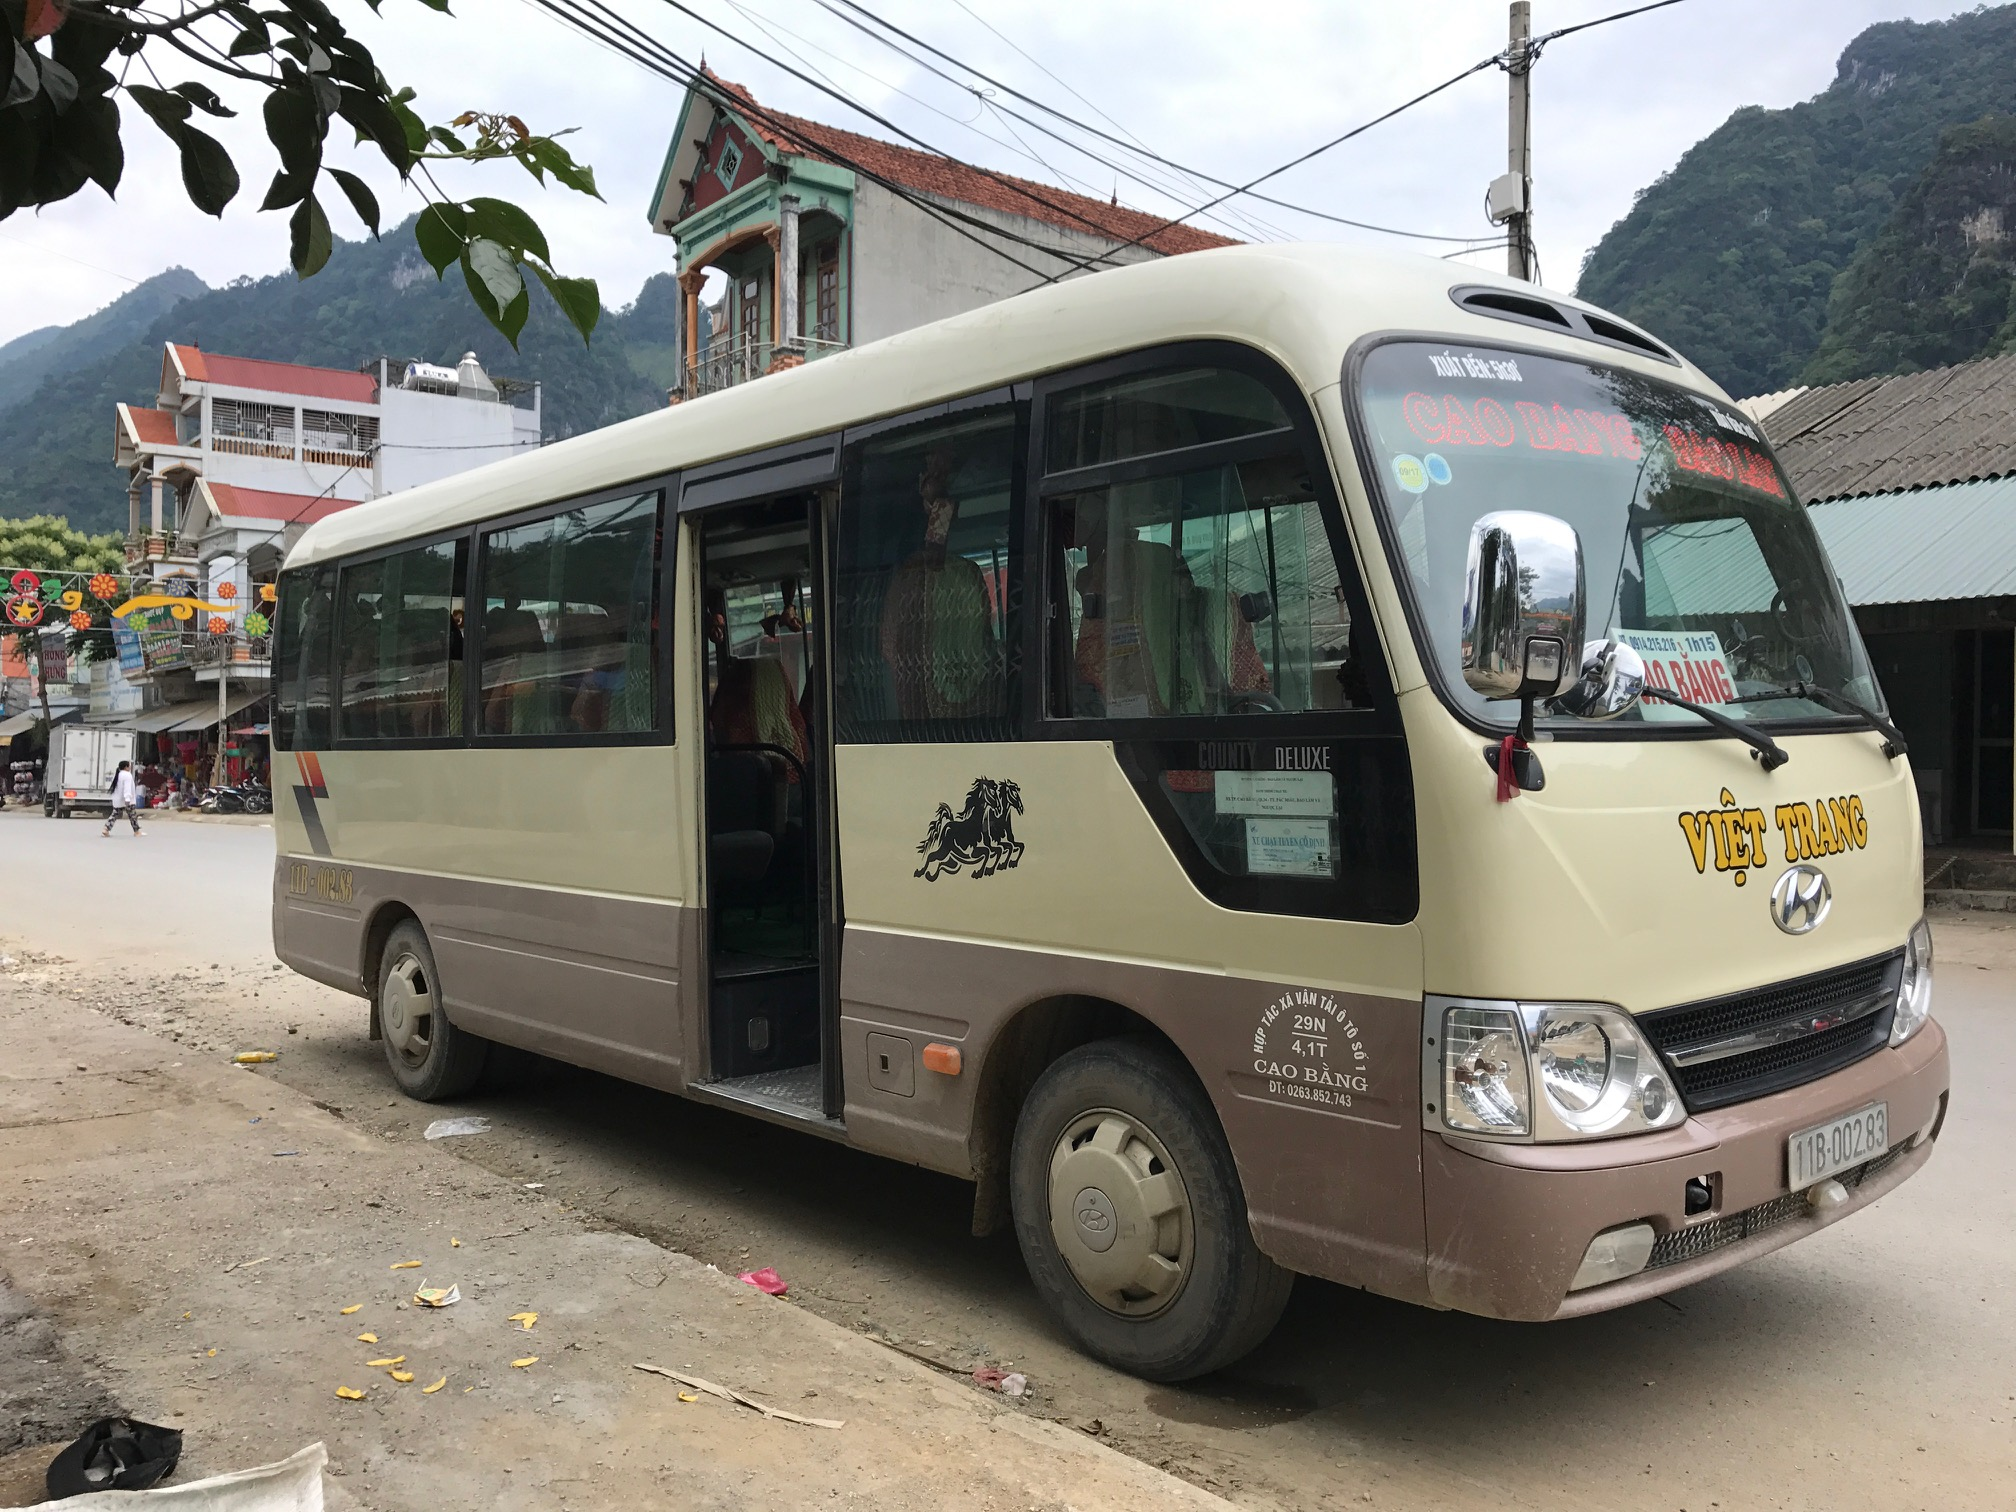 This is the Ha Giang to Bao Lam bus. Once in Bao Lam, transfer to a new bus that says Cao Bang.